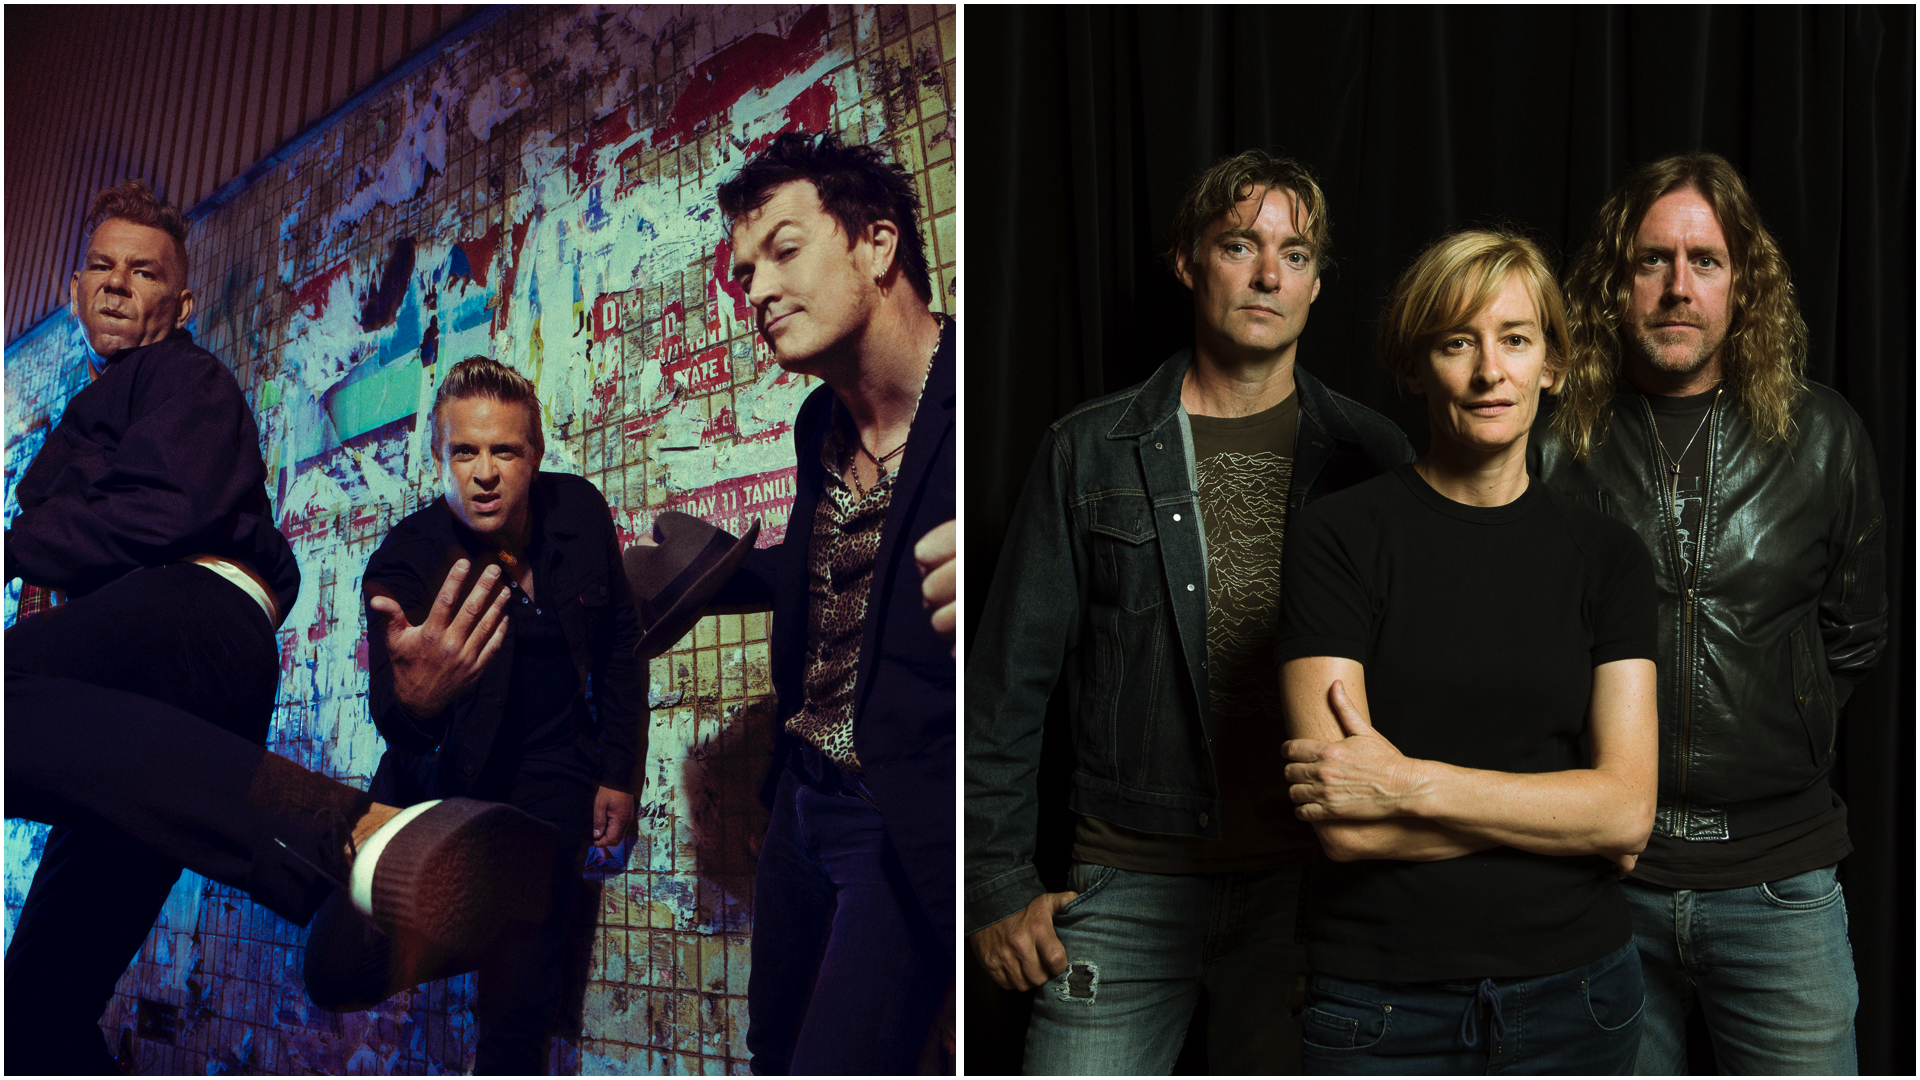 The Living End and Spiderbait